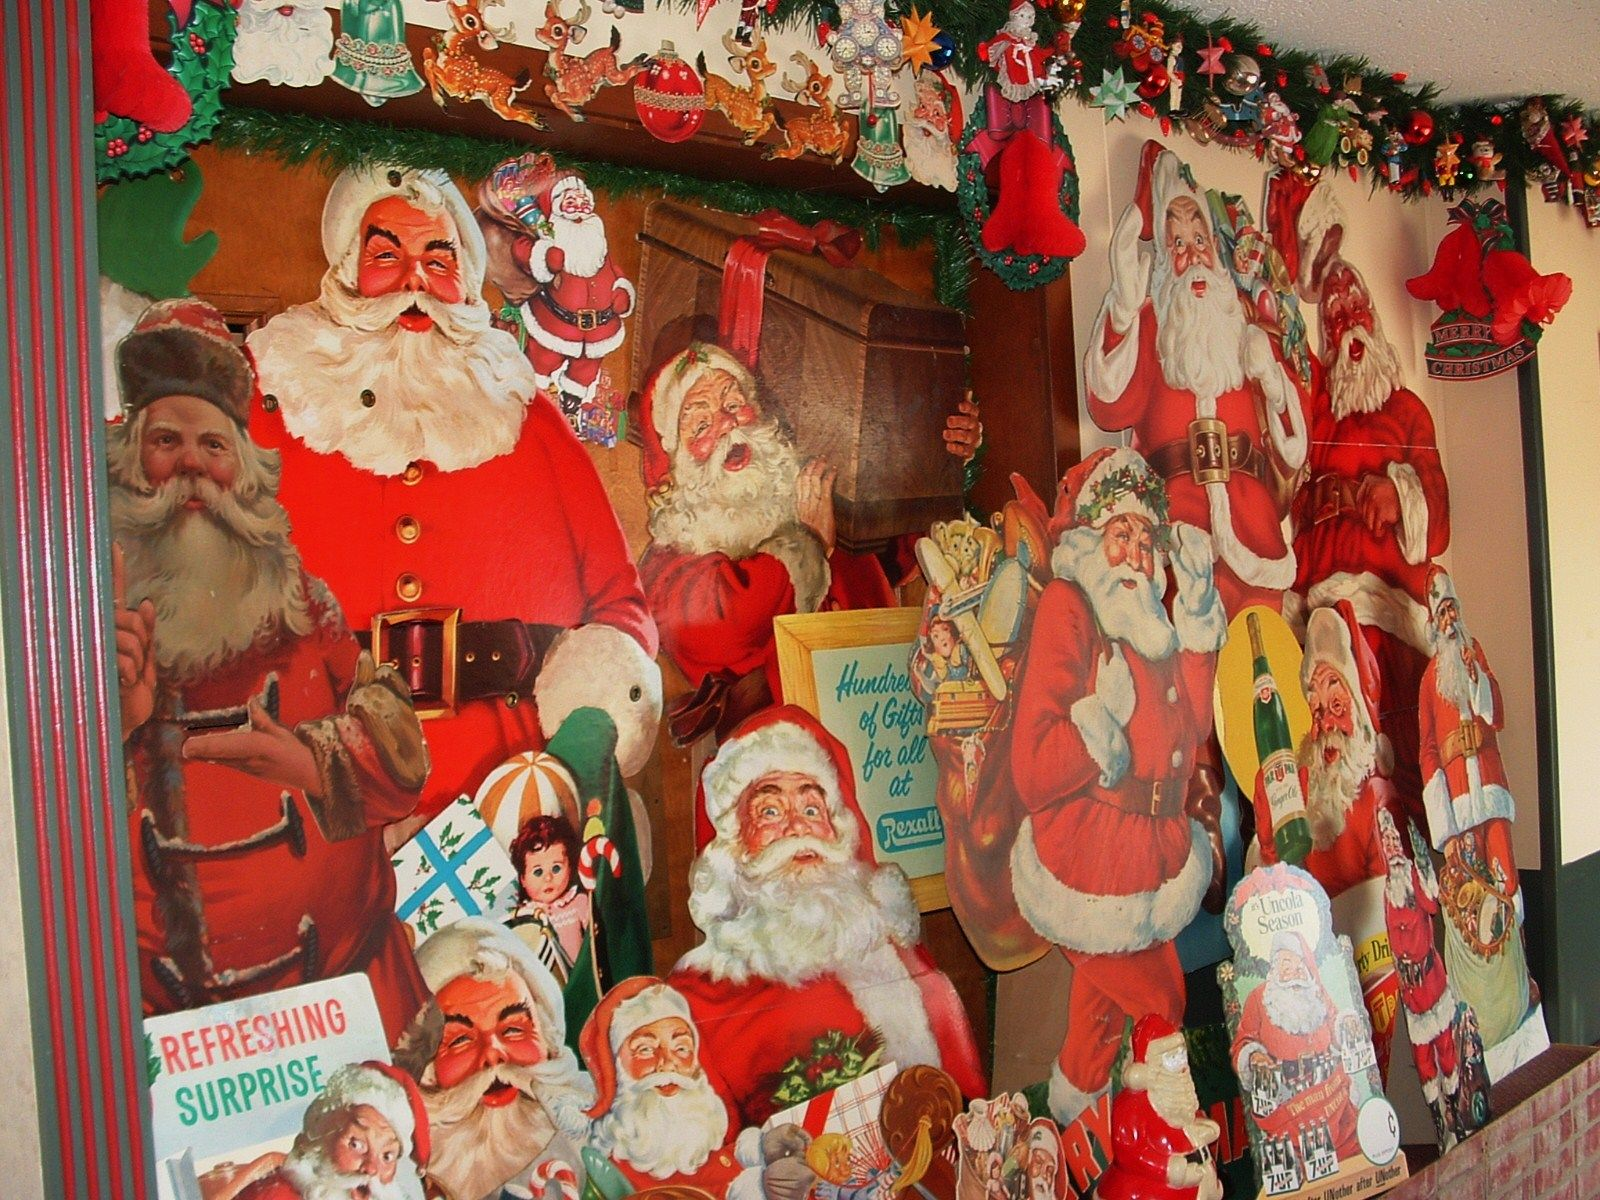 1950's Santas' from the National Christmas Center